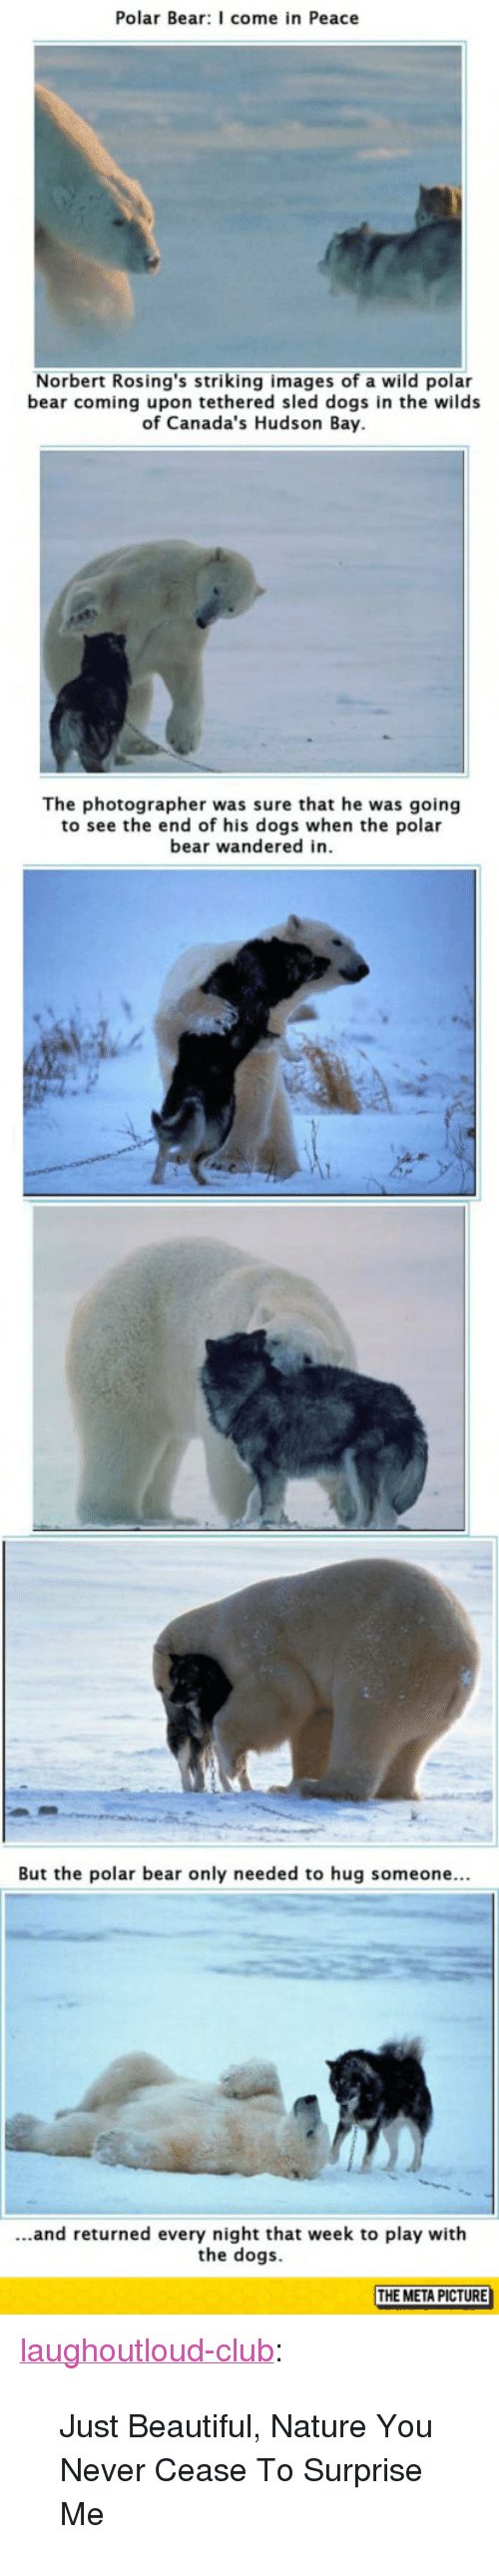 "Beautiful, Club, and Dogs: Polar Bear: I come in Peace  Norbert Rosing's striking images of a wild polar  bear coming upon tethered sled dogs in the wilds  of Canada's Hudson Bay  The photographer was sure that he was going  to see the end of his dogs when the polar  bear wandered in  But the polar bear only needed to hug someone...  ...and returned every night that week to play with  the dogs  THE META PICTURE <p><a href=""http://laughoutloud-club.tumblr.com/post/154691158076/just-beautiful-nature-you-never-cease-to-surprise"" class=""tumblr_blog"">laughoutloud-club</a>:</p>  <blockquote><p>Just Beautiful, Nature You Never Cease To Surprise Me</p></blockquote>"